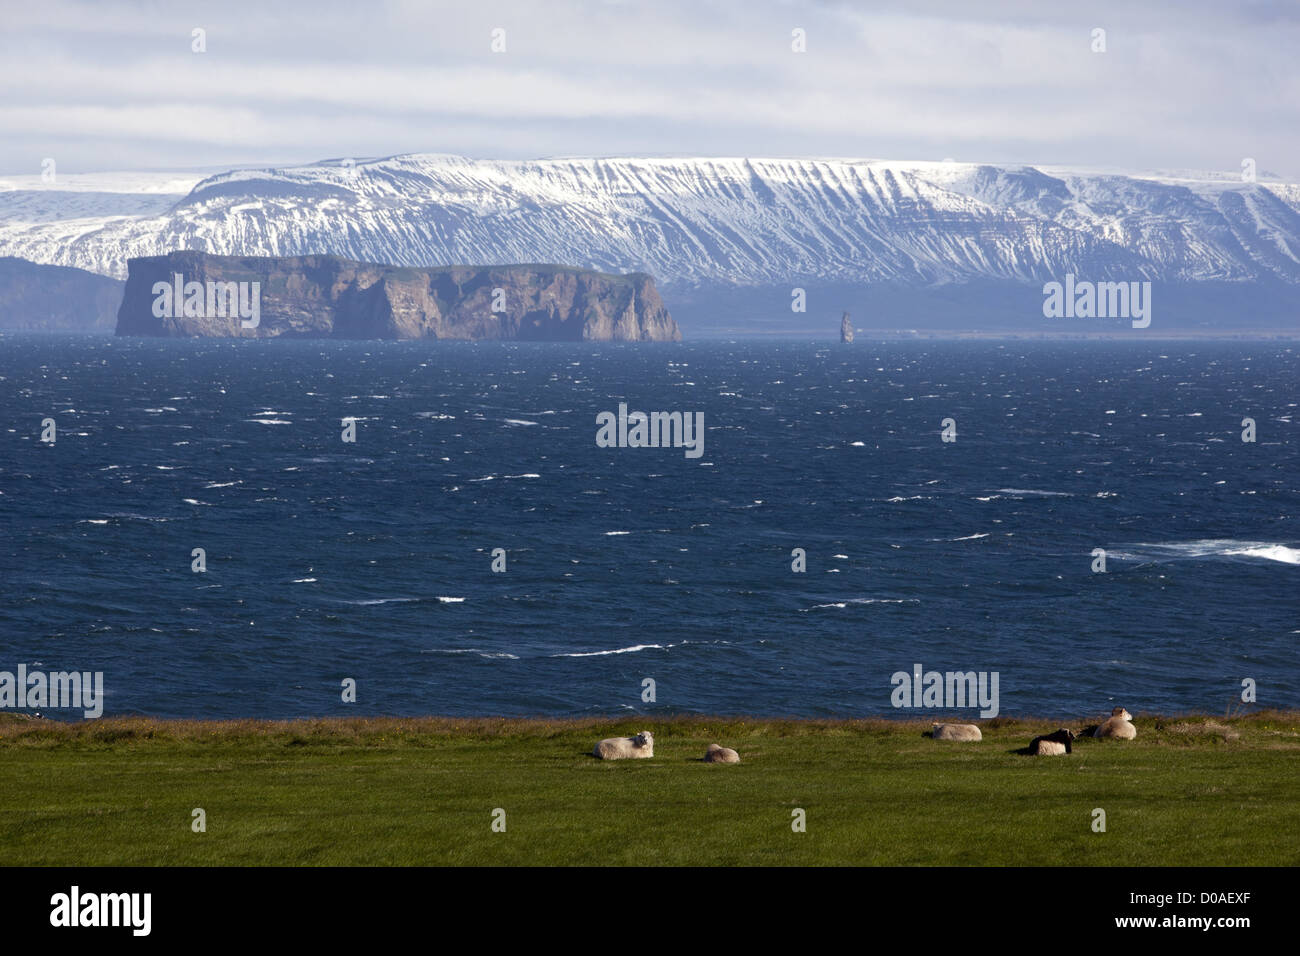 PASTURELAND FOR ICELANDIC SHEEP ON A BANK OF THE SKAGAFJORDUR FJORD IN THE NORTH OF ICELAND EUROPE - Stock Image